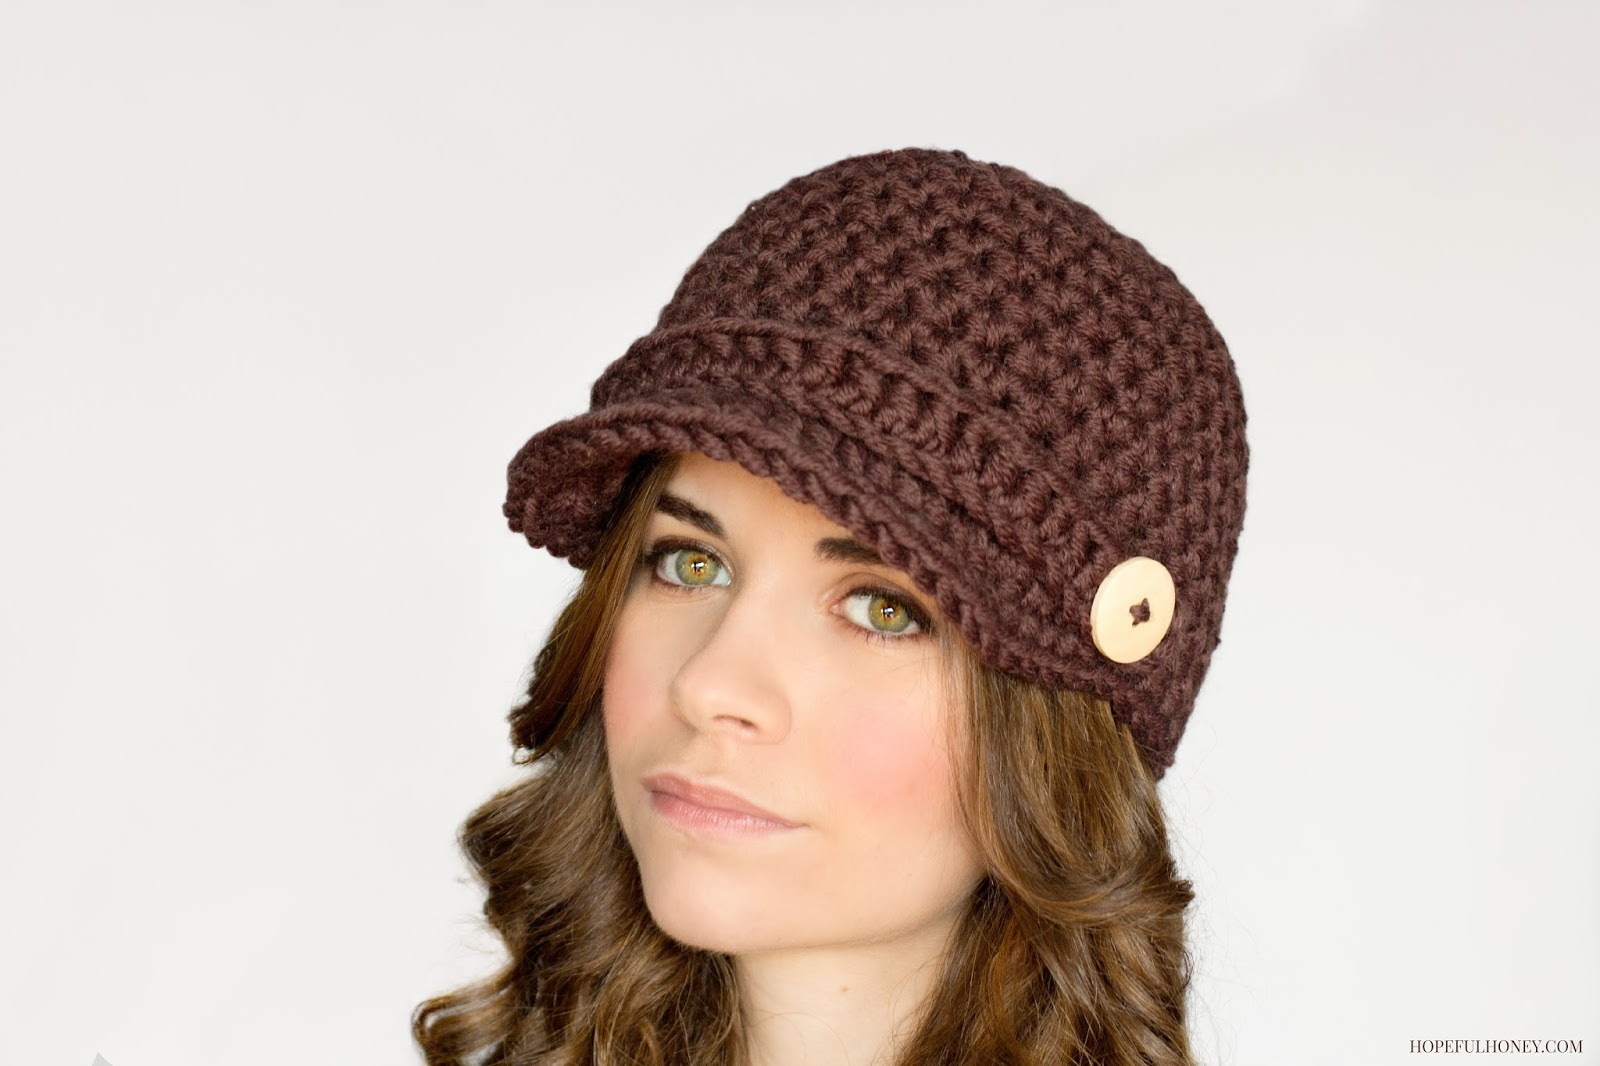 Hopeful Honey Craft, Crochet, Create: Nifty Newsboy Hat ...